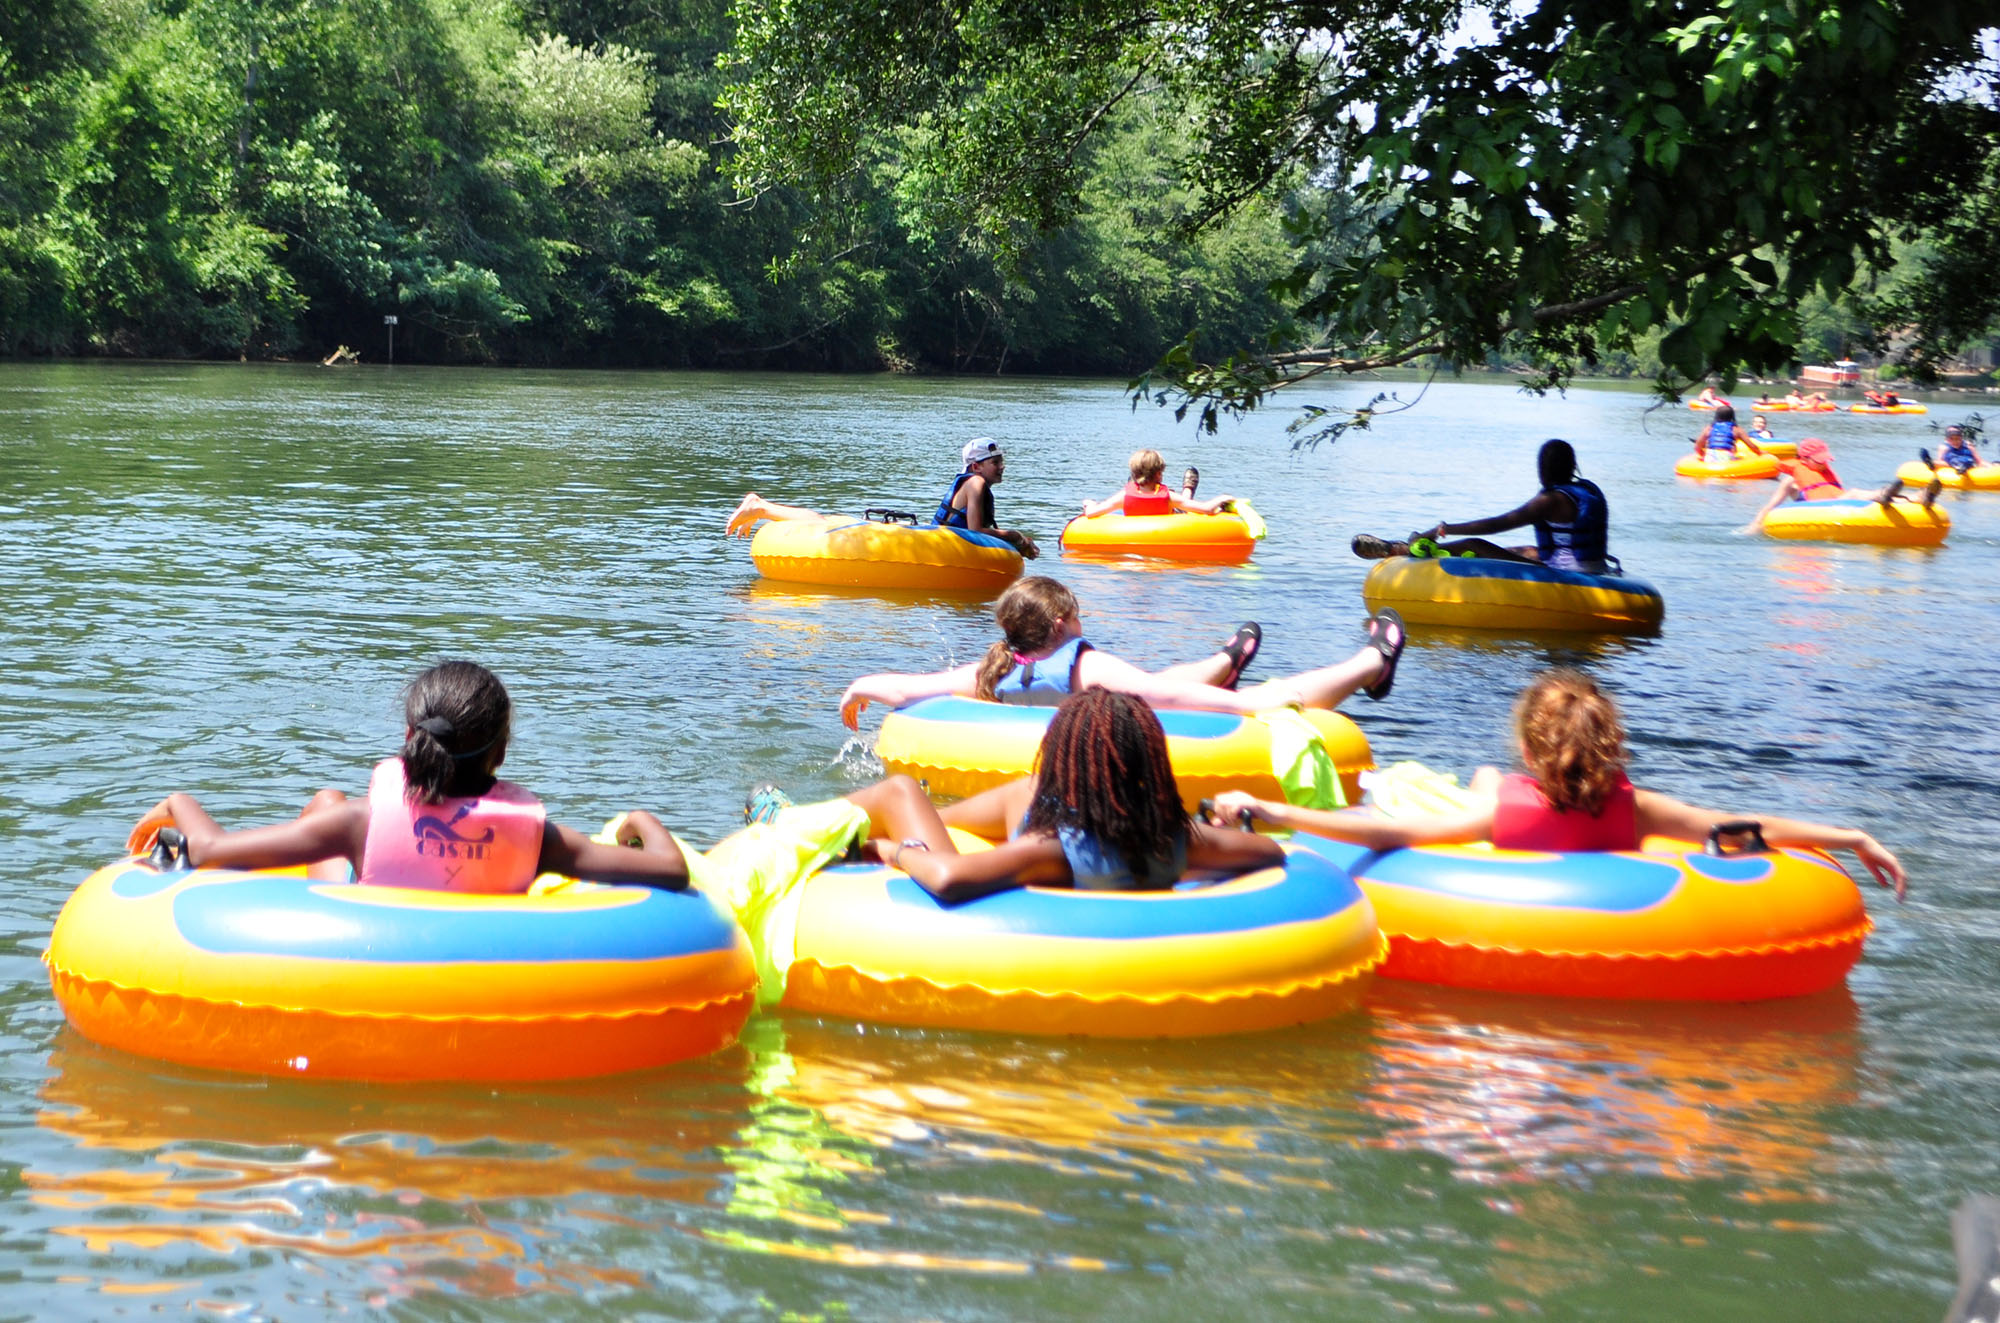 Tubing on the Chattahoochee River with Shoot the Hooch in Roswell, Georgia